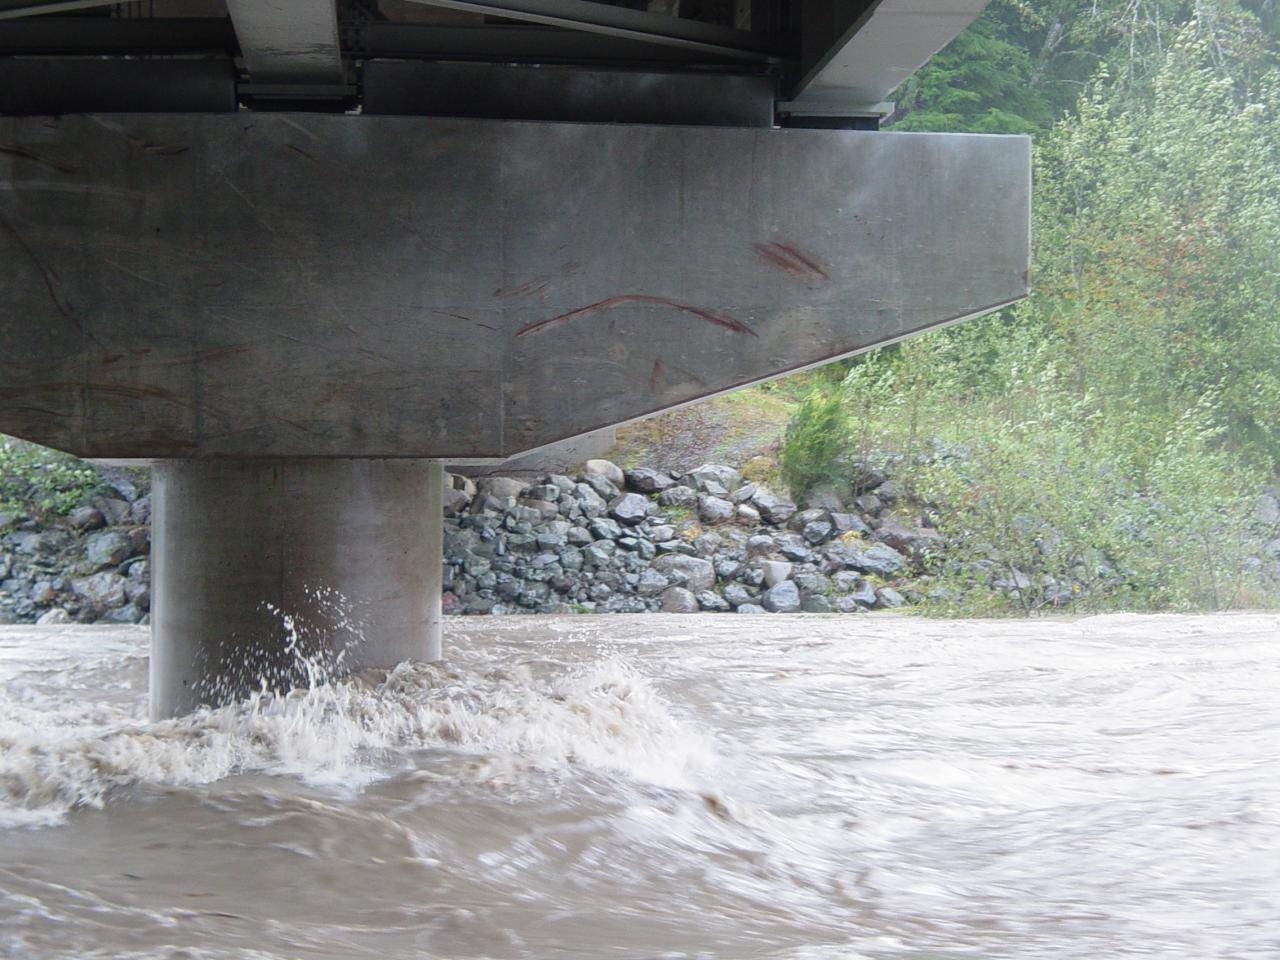 Extreme high water ... notice tree scars on bridge girders.